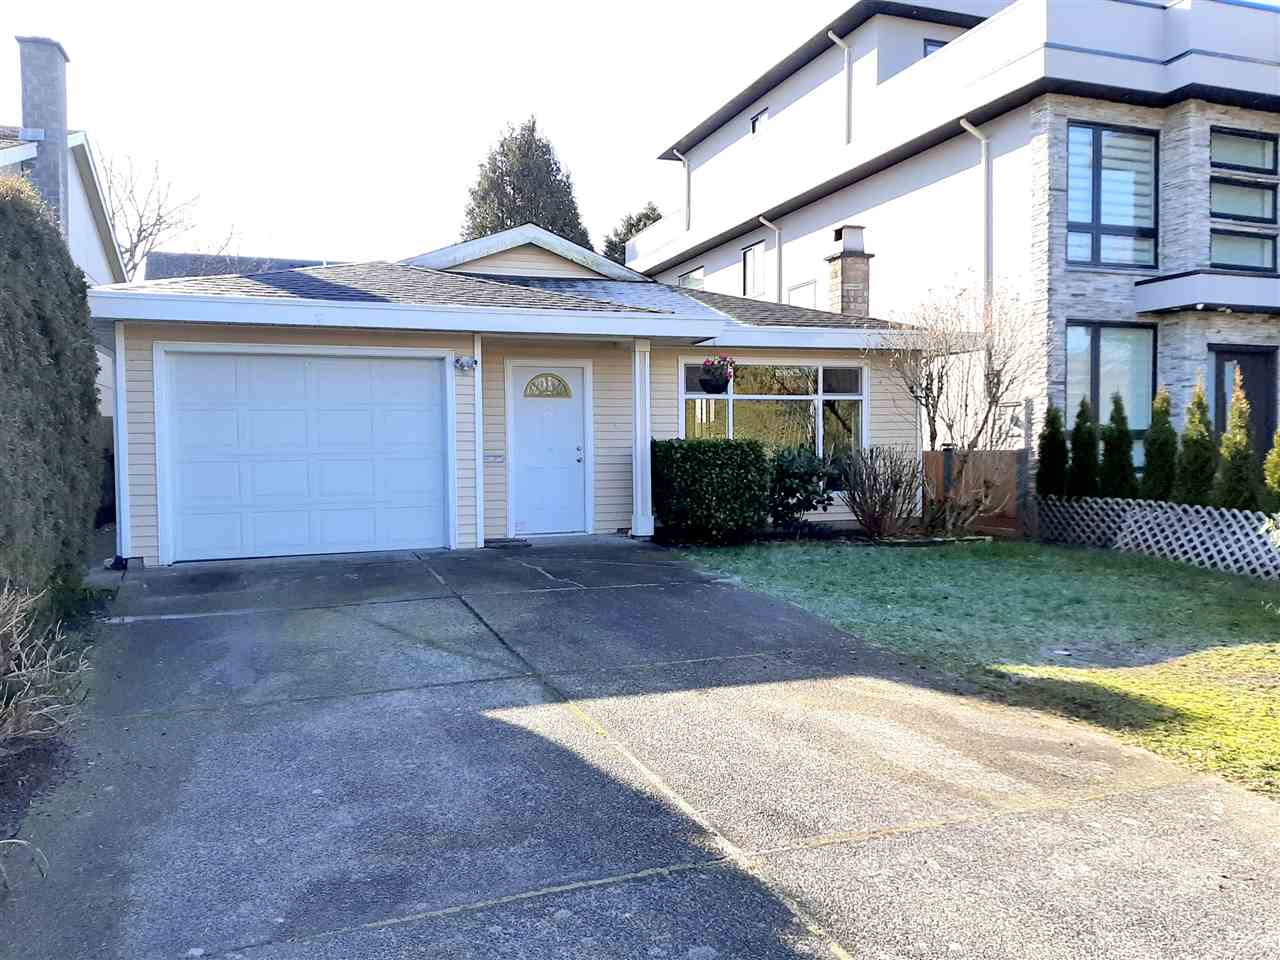 6140 GOLDSMITH DRIVE - Woodwards House/Single Family for sale, 3 Bedrooms (R2437900)